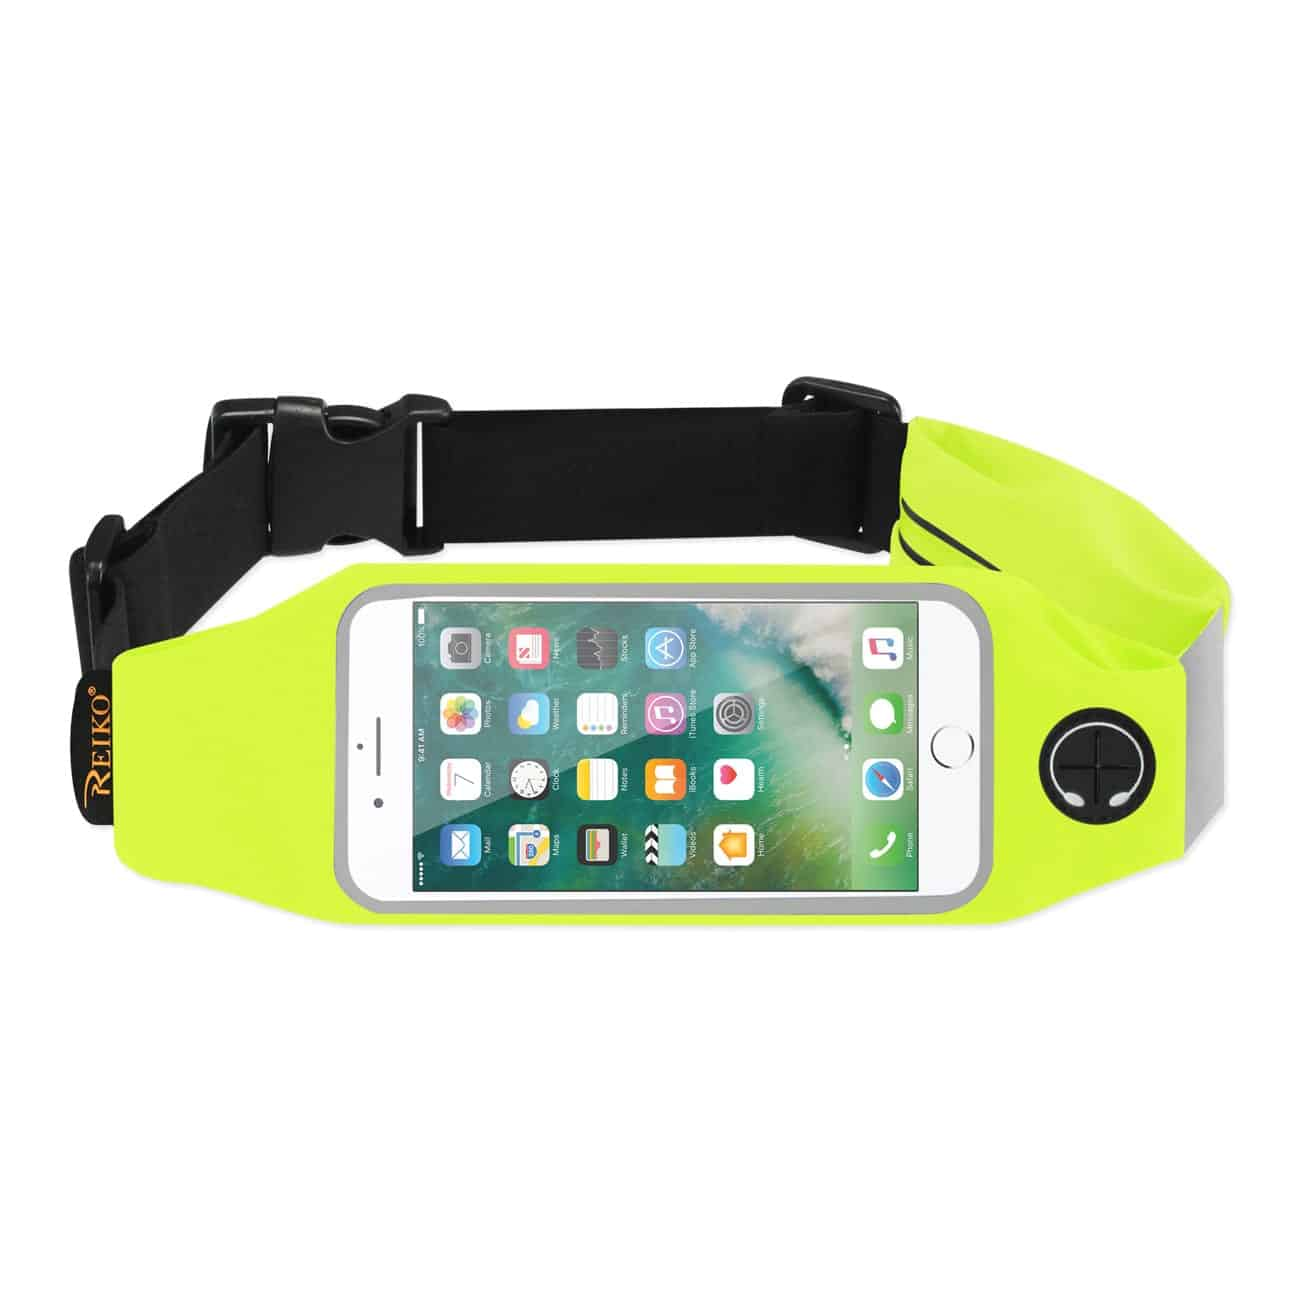 RUNNING SPORT BELT FOR IPHONE 7/ 6/ 6S OR 5 INCHES DEVICE WITH TWO POCKETS IN GREEN (5x5 INCHES)